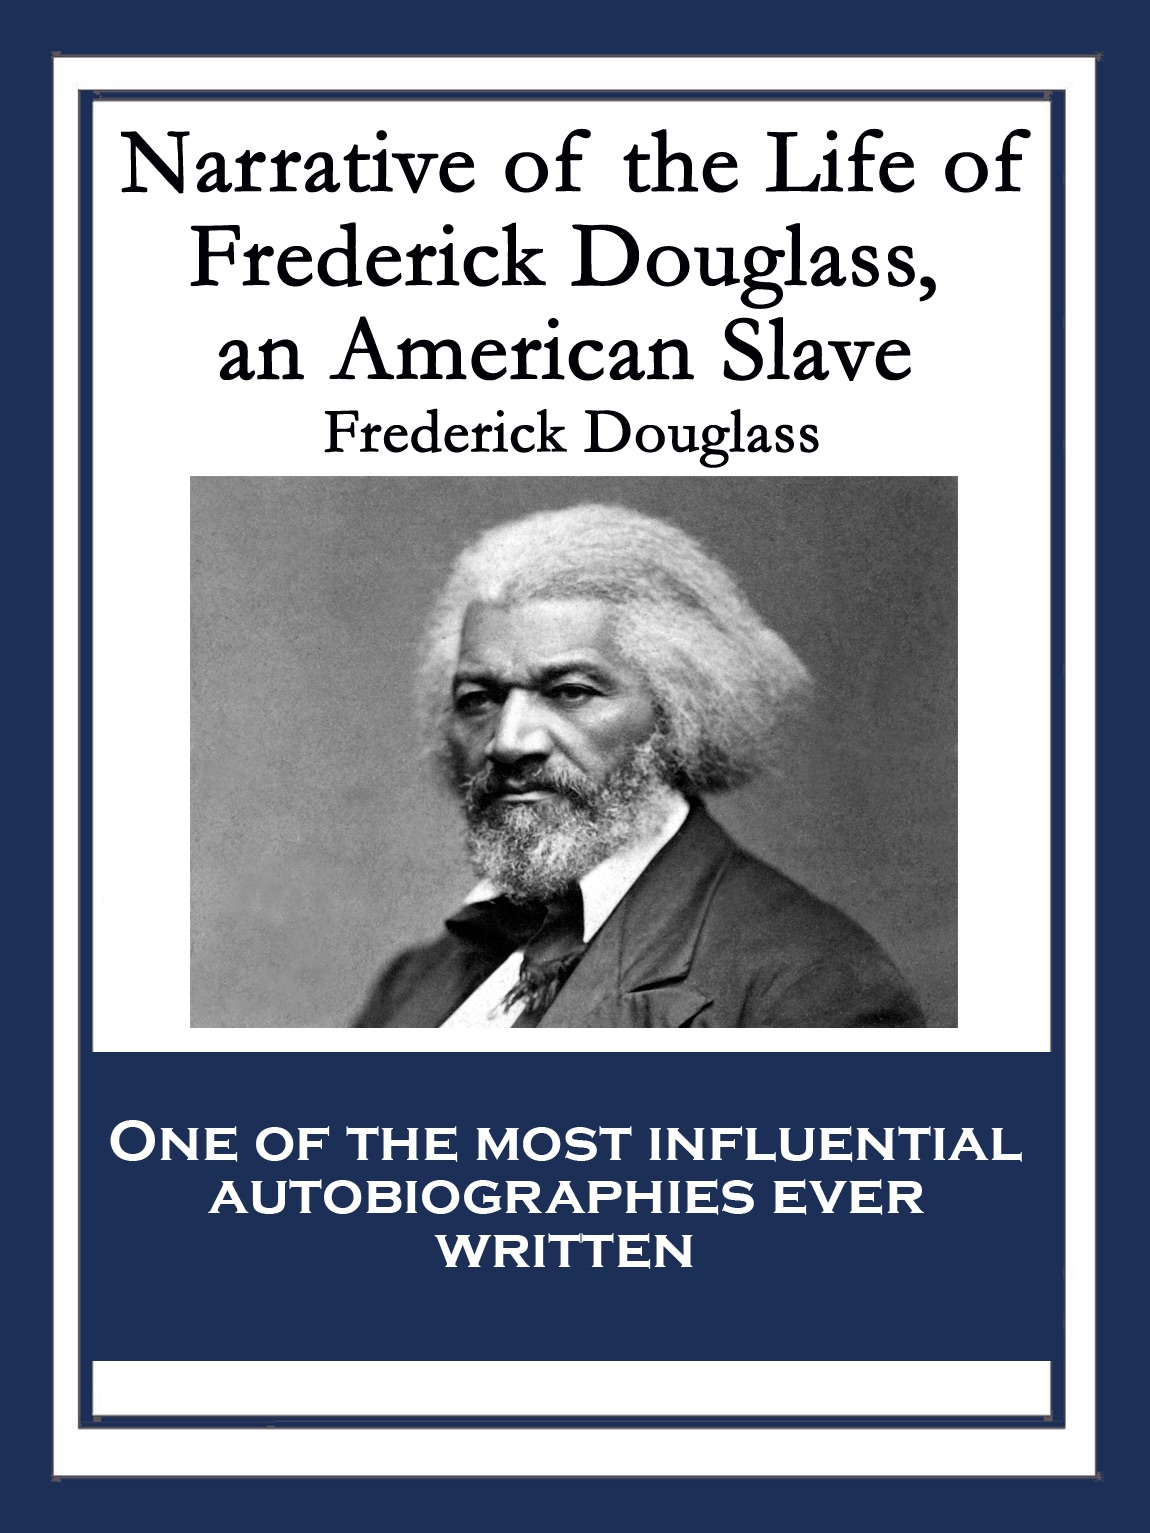 an overview of the slave life of frederick douglass Narrative of the life of frederick douglass, an american slave written by  himself boston: anti-slavery office, 1845 summary frederick douglass is one  of the.